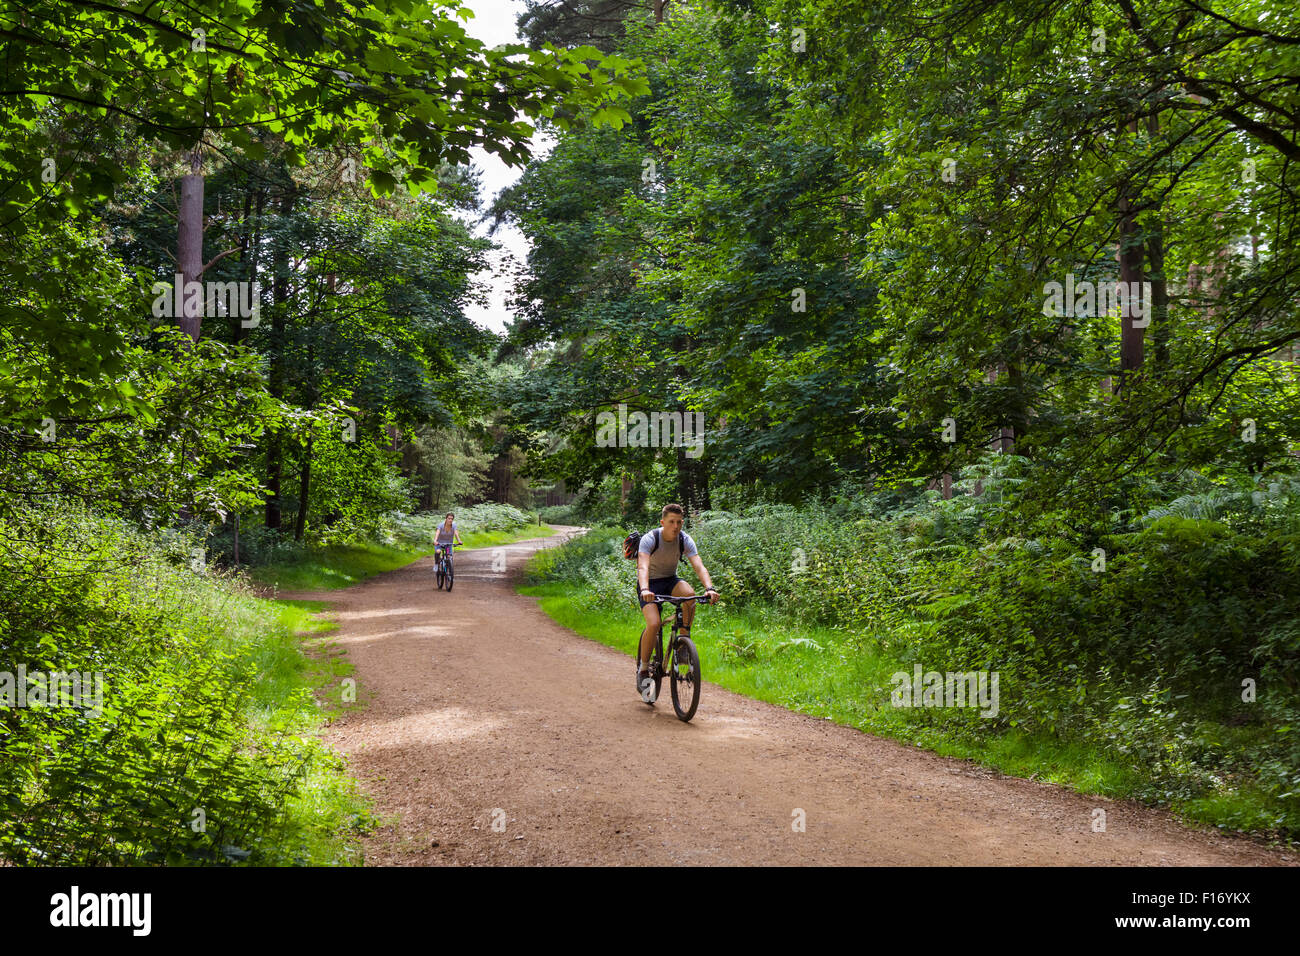 Cyclists on a trail through Thetford Forest, Norfolk, England, UK - Stock Image